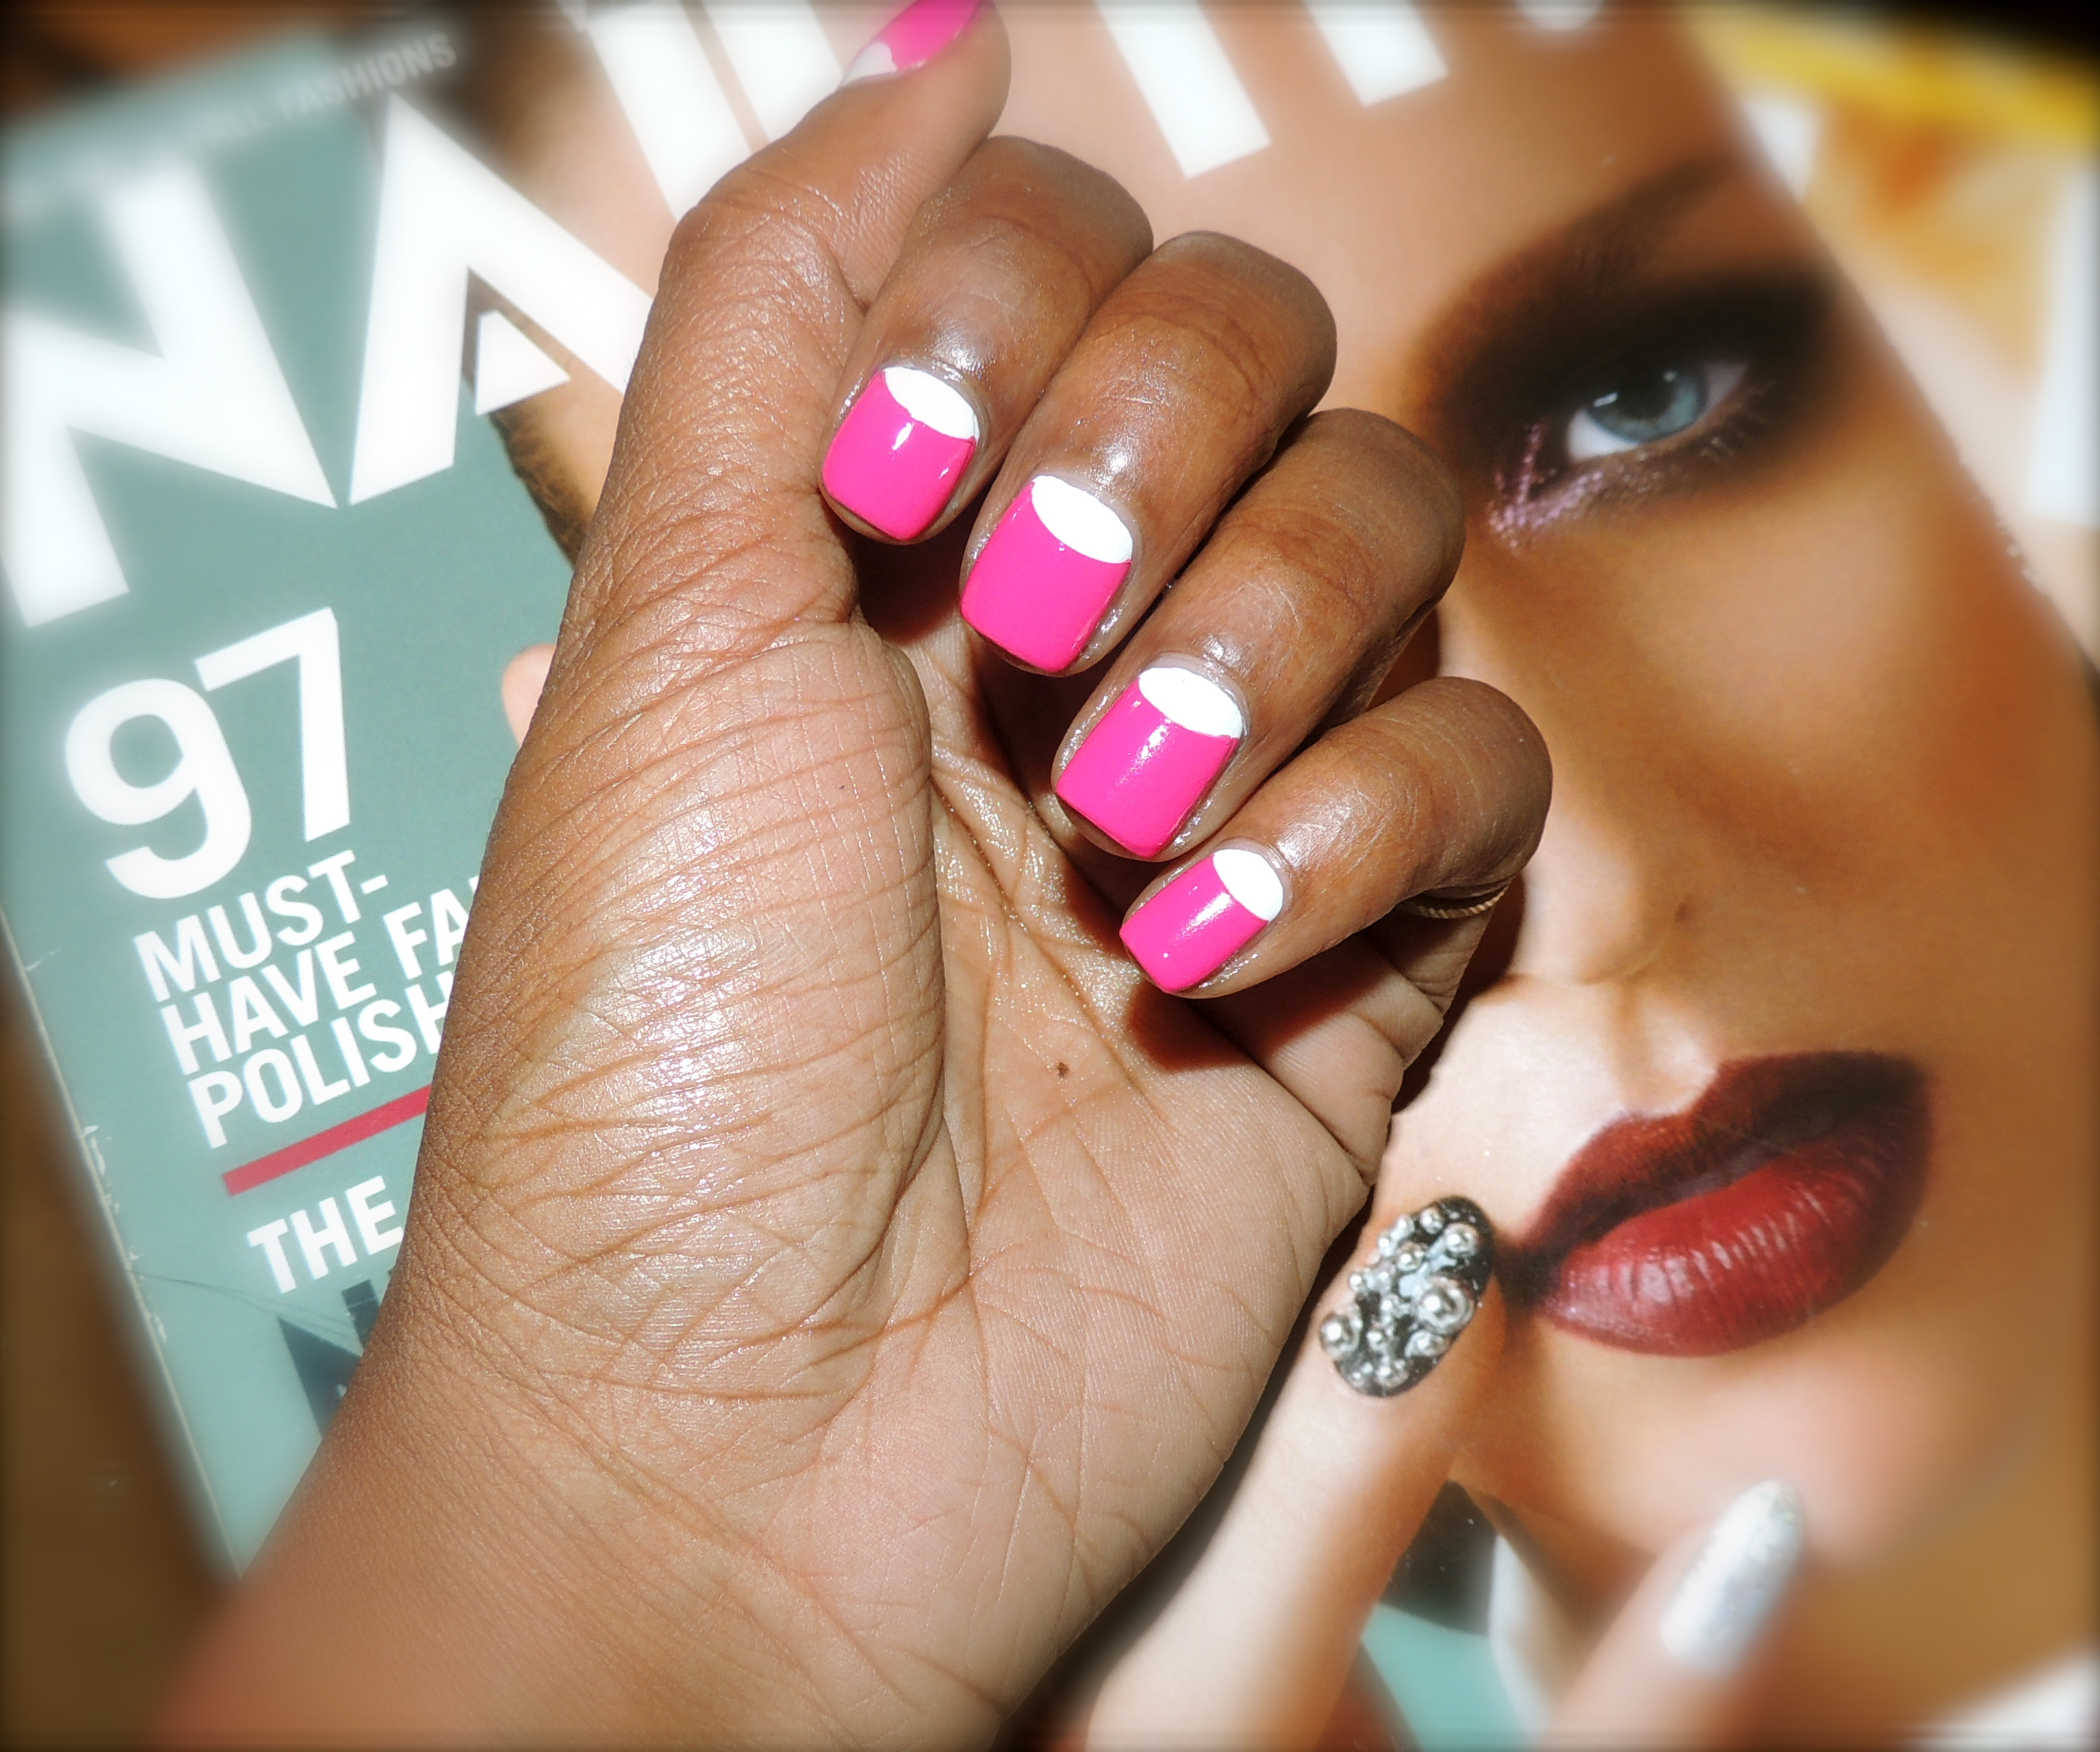 Bubblegum pink shimmerORLY is one of the nail industry's most renowned brand. Orly seasonally introduces new collections and updates its array of permanent polishes and lacquers. By.